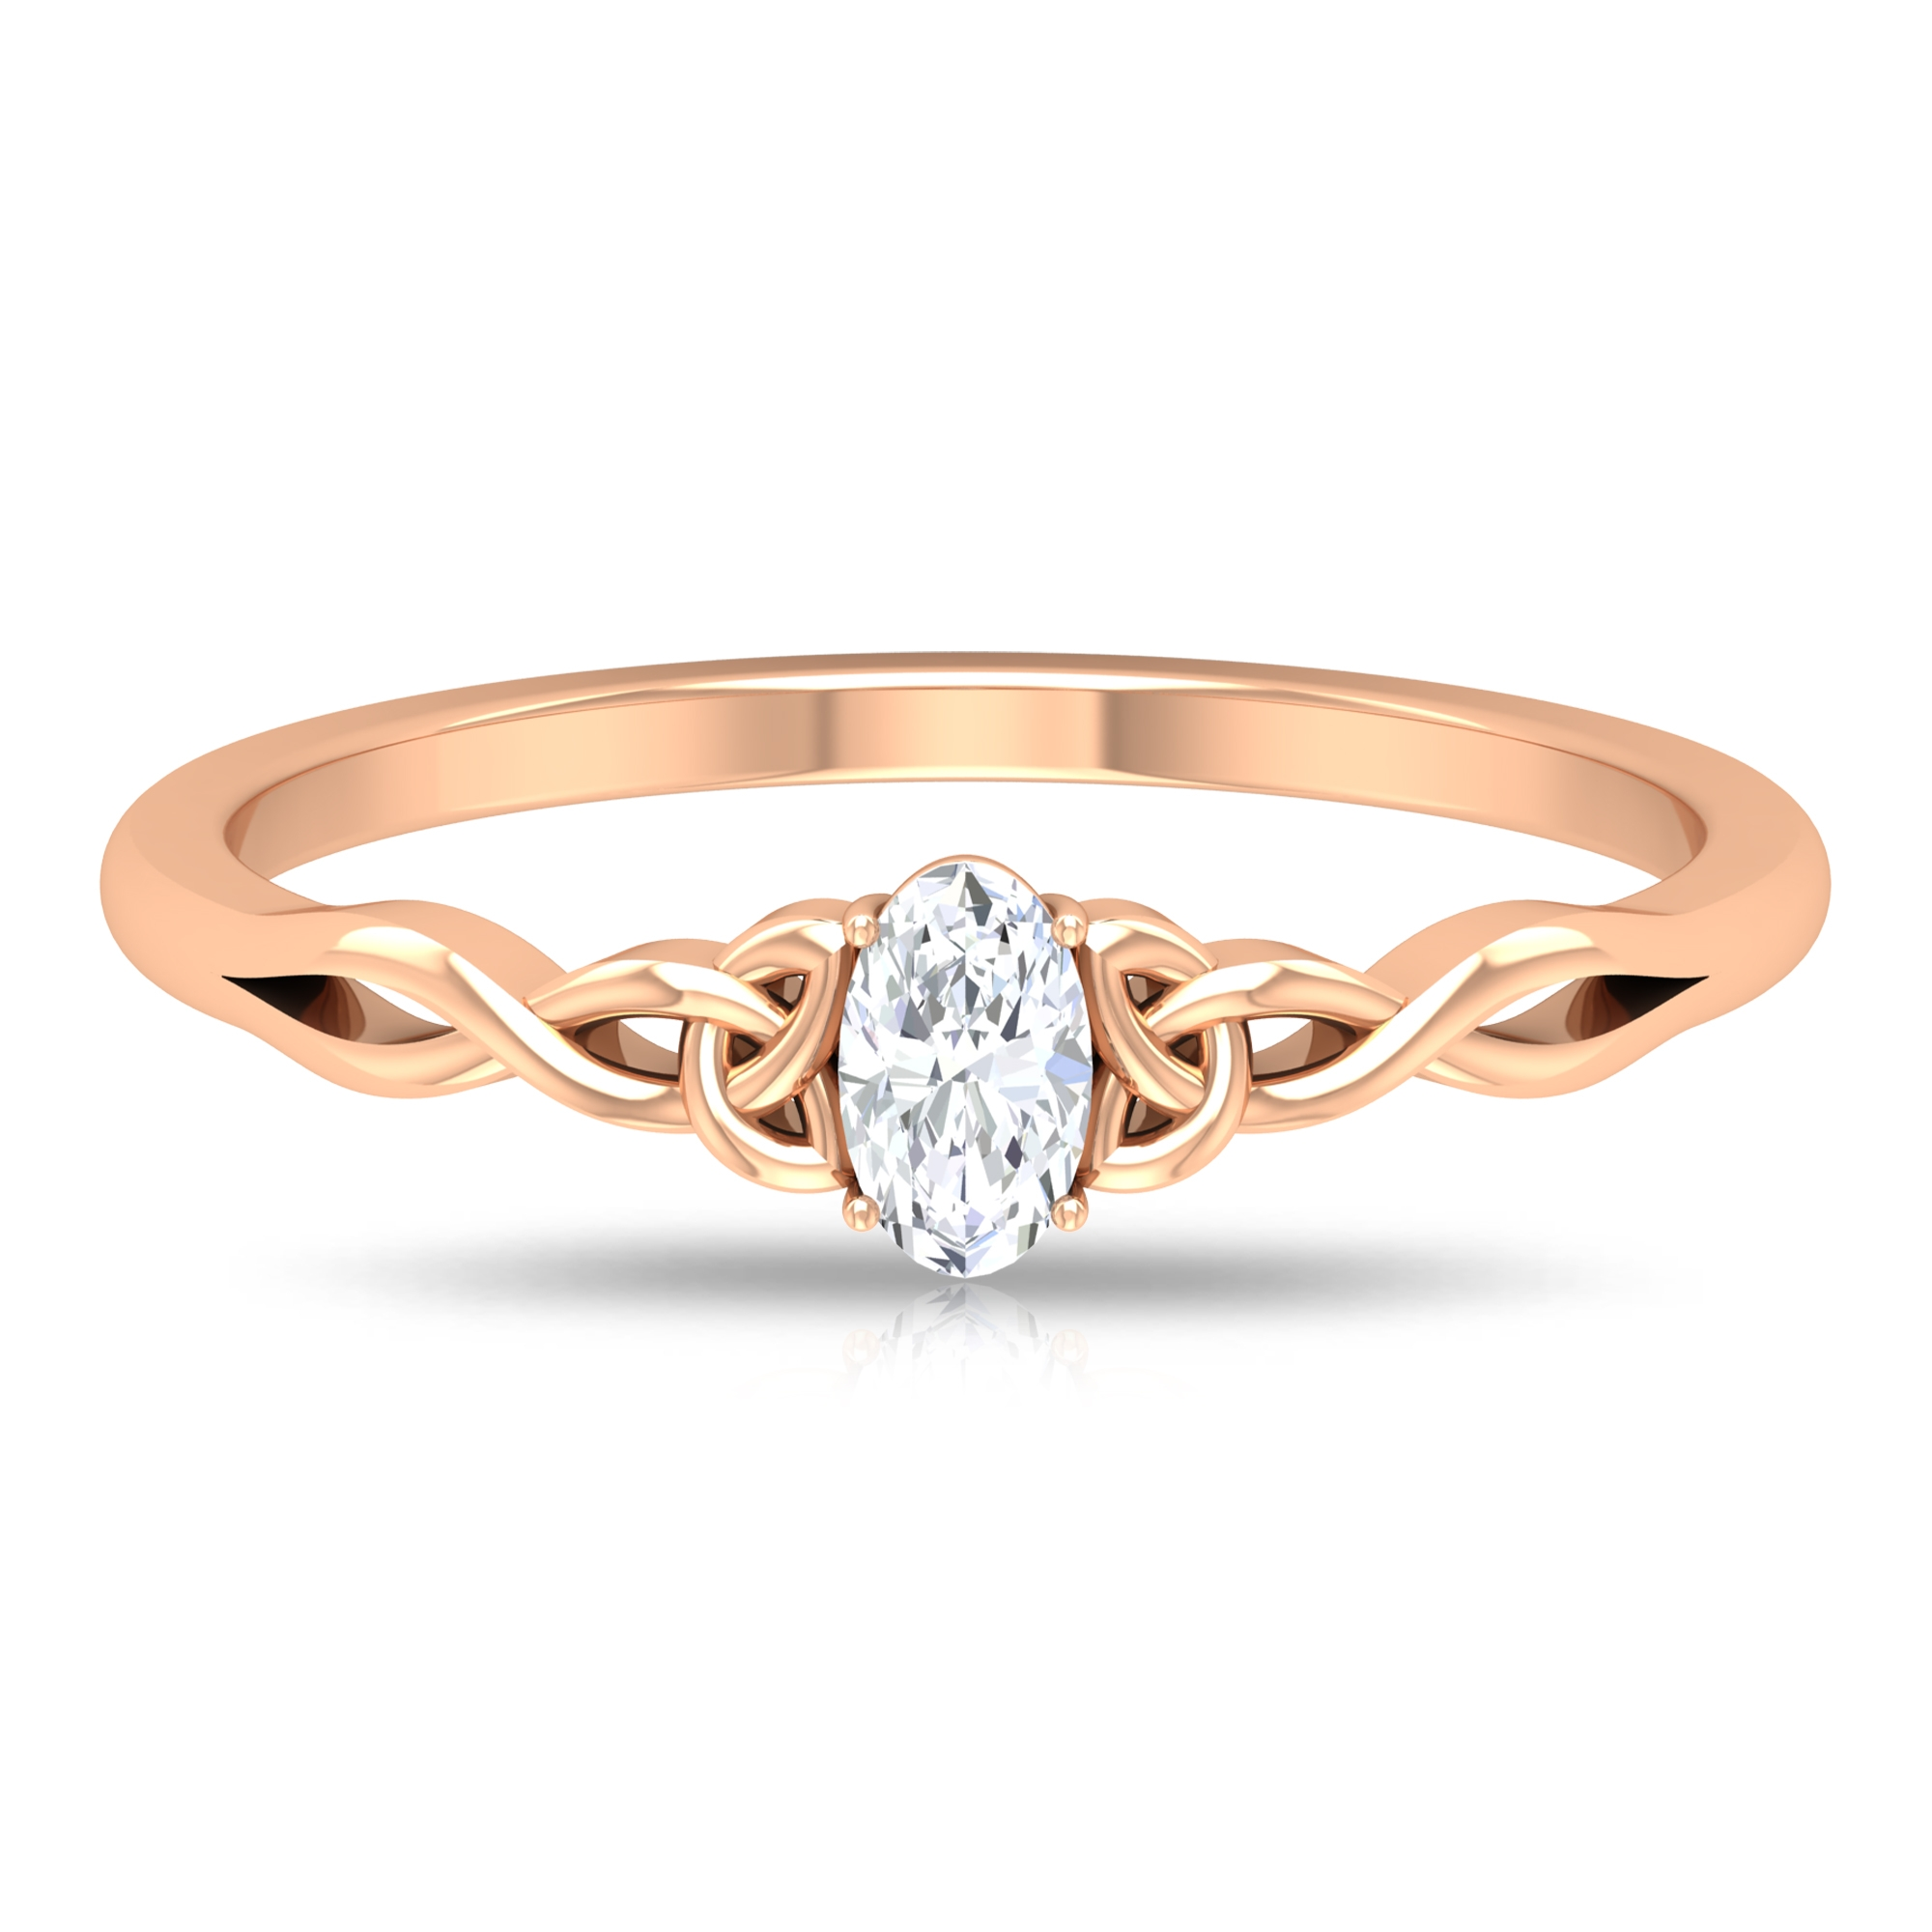 3X5 MM Oval Cut Solitaire Diamond Celtic Ring in 4 Prong Setting